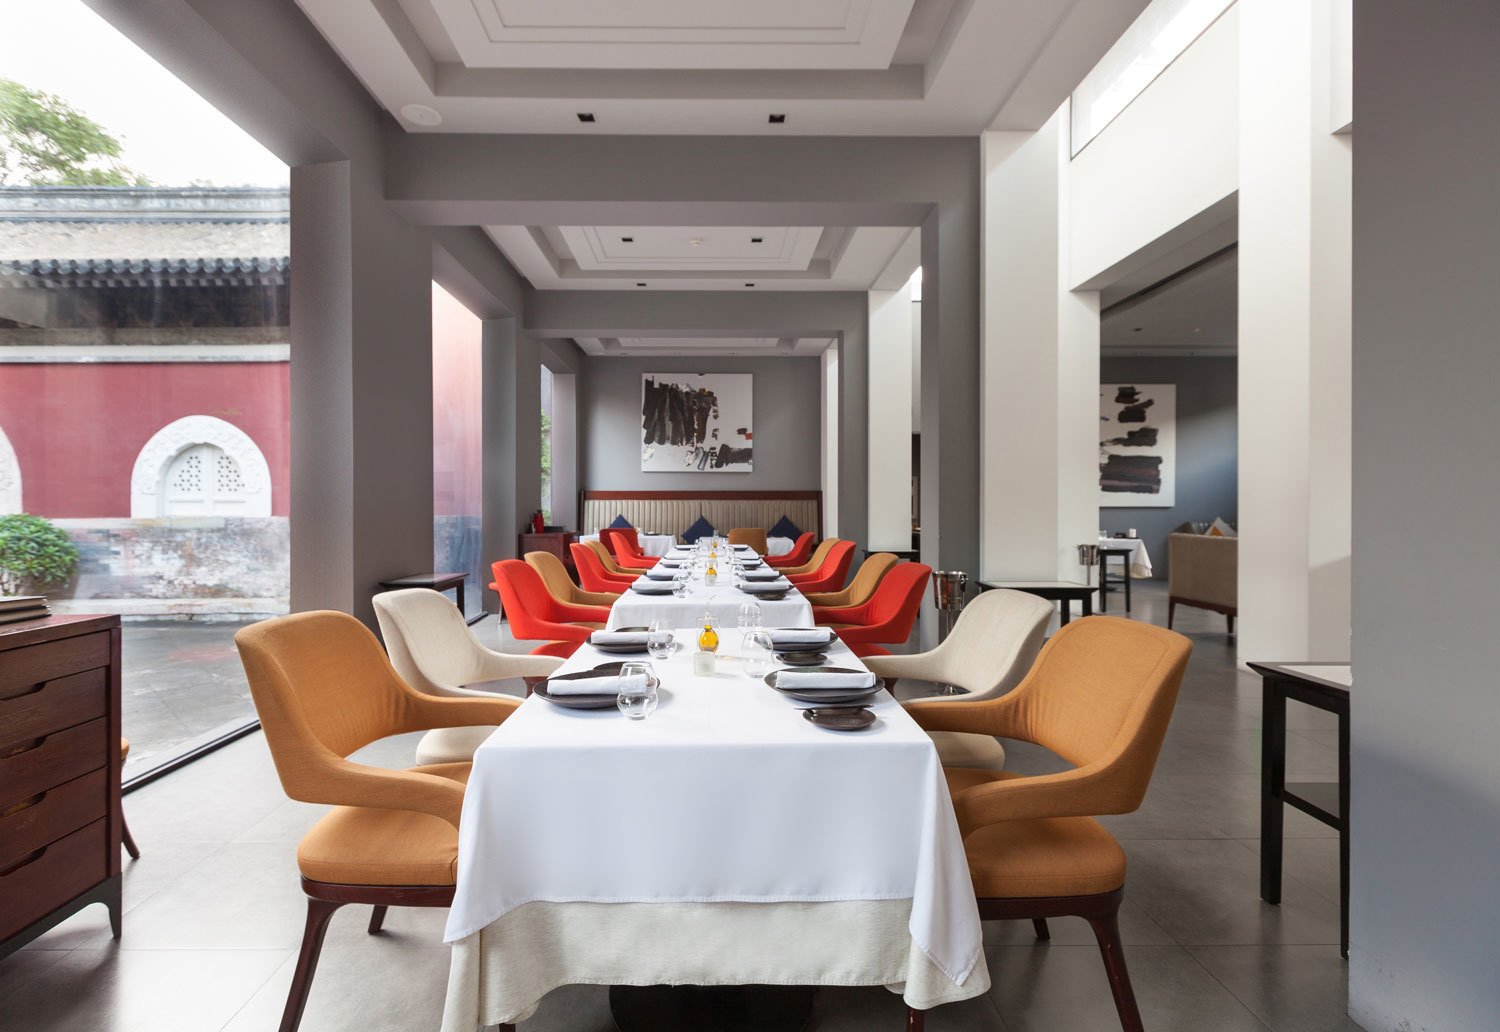 Temple Restaurant does European fine dining on the grounds of a 600-year-old temple that was used as a television factory during the Cultural Revolution. The beautiful lot is also home to a boutique hotel and gallery.  Photo 3 of 10 in 10 Places to Visit in Beijing